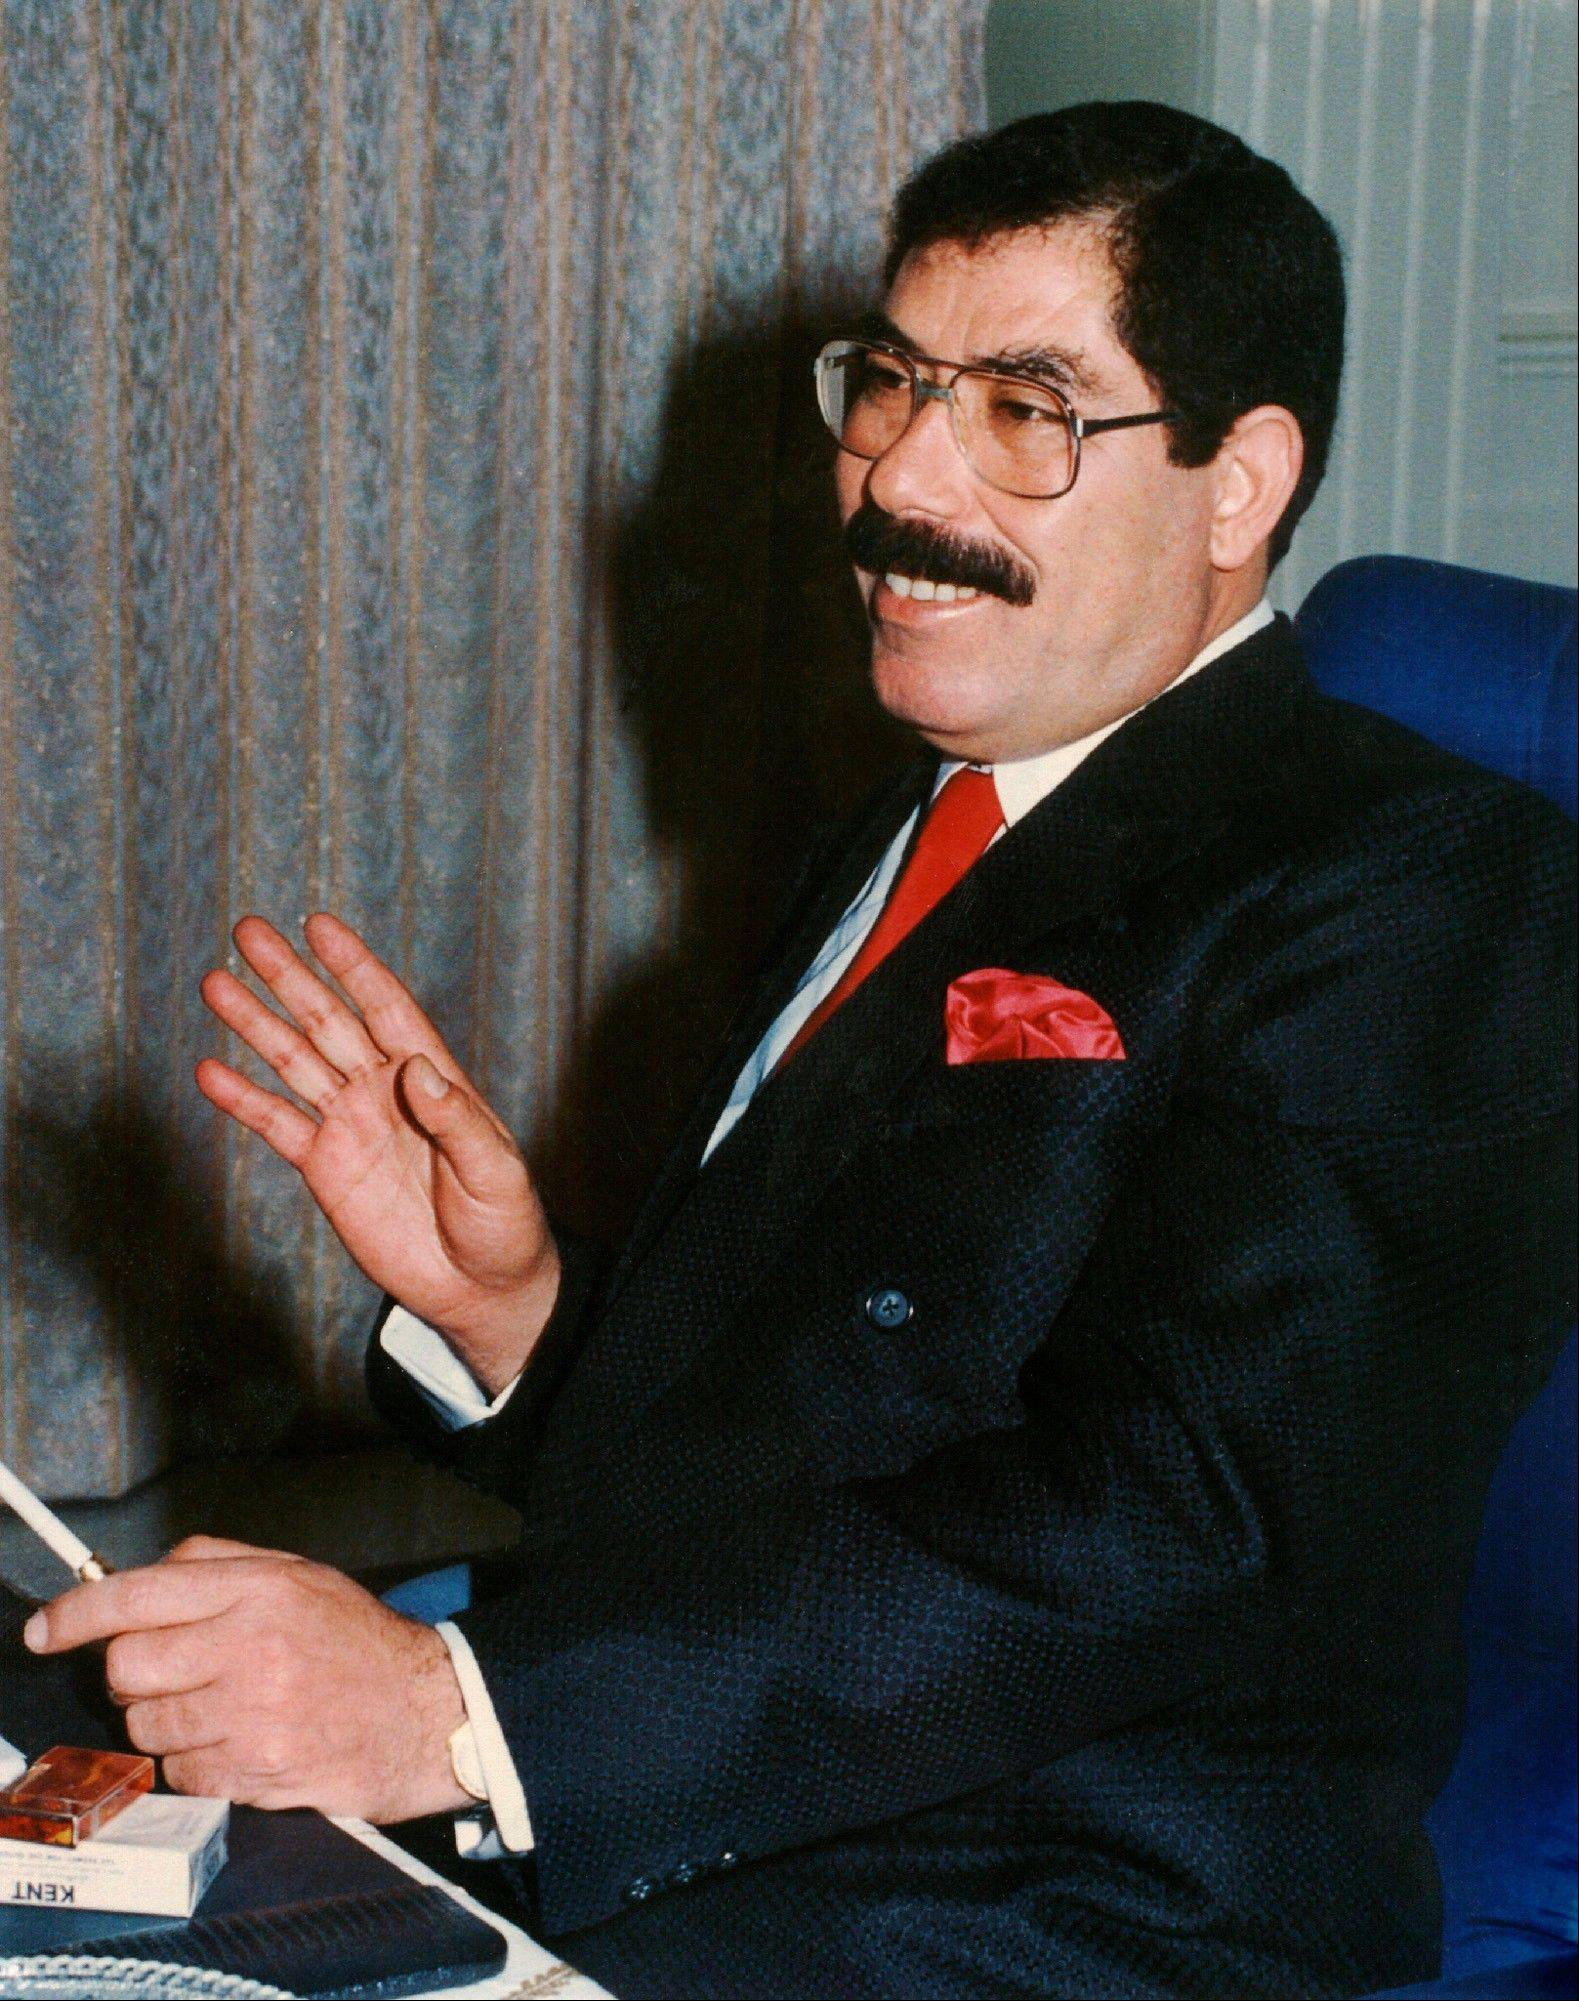 Sabawi Ibrahim al-Hassan, a half-brother of former Iraqi President Saddam Hussein, shown here in 1995, has died of cancer in a Baghdad hospital, a senior official said.